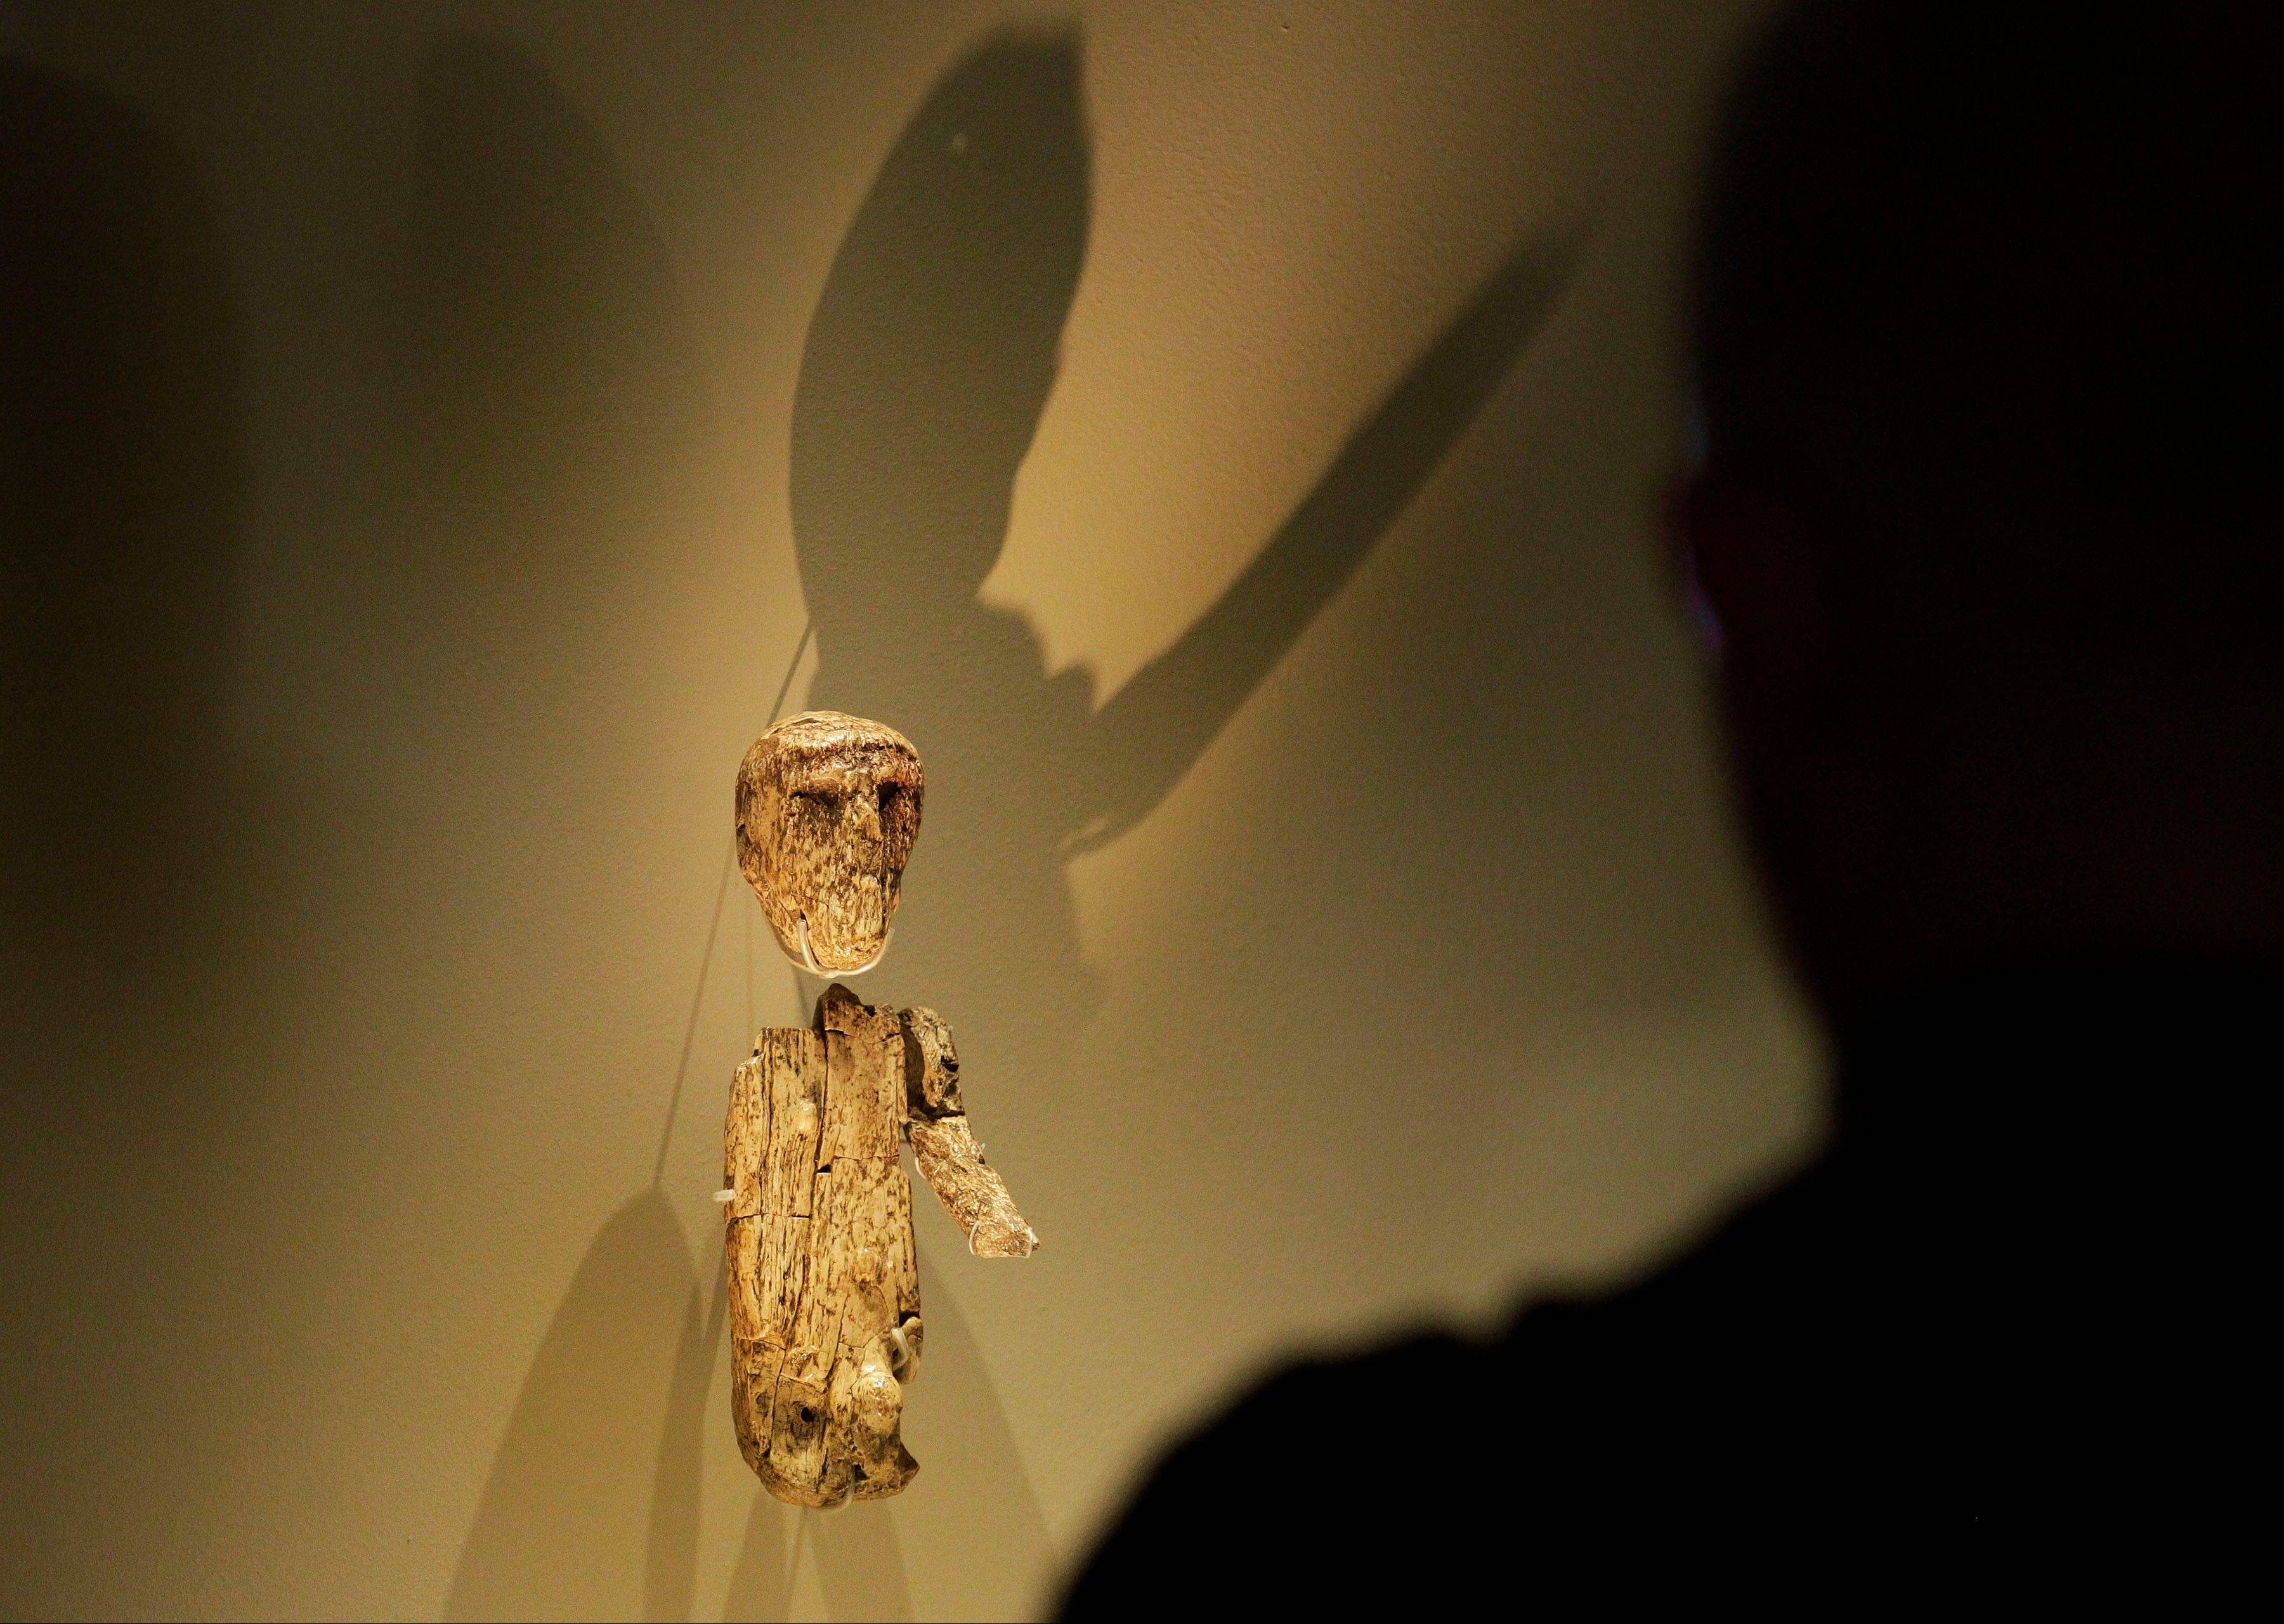 A visitor looks at a small male figure sculptured from a large mammoth tusk that dates around 27,000 years ago, discovered at Brno, Moravia, Czech Republic next to a skeleton of a man.